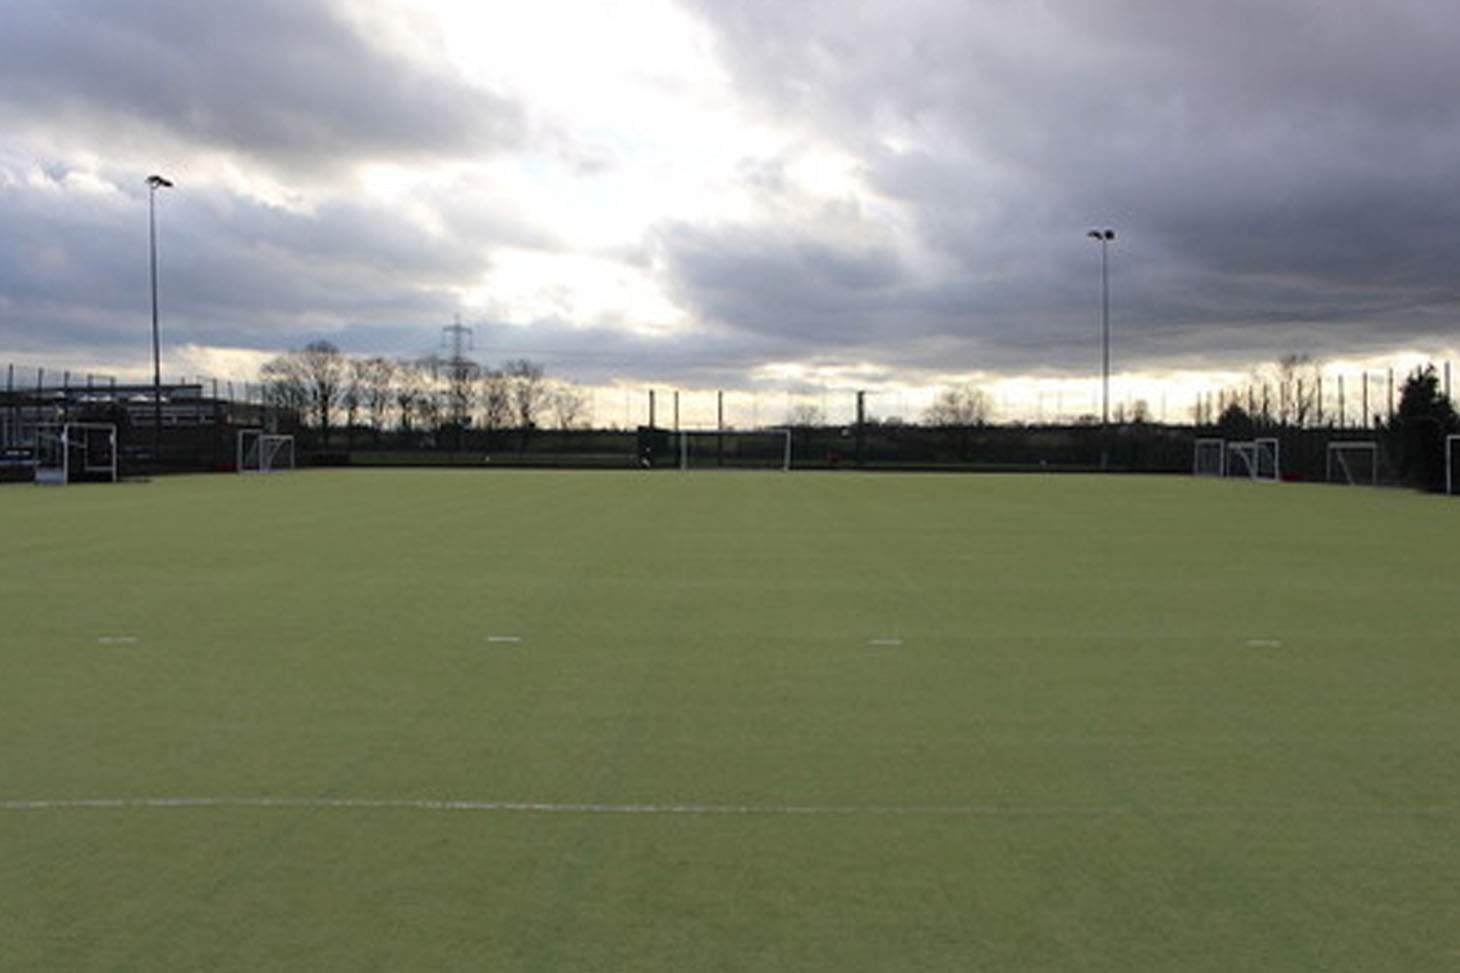 Egglescliffe School Pitch | Sand-based Astroturf rugby pitch